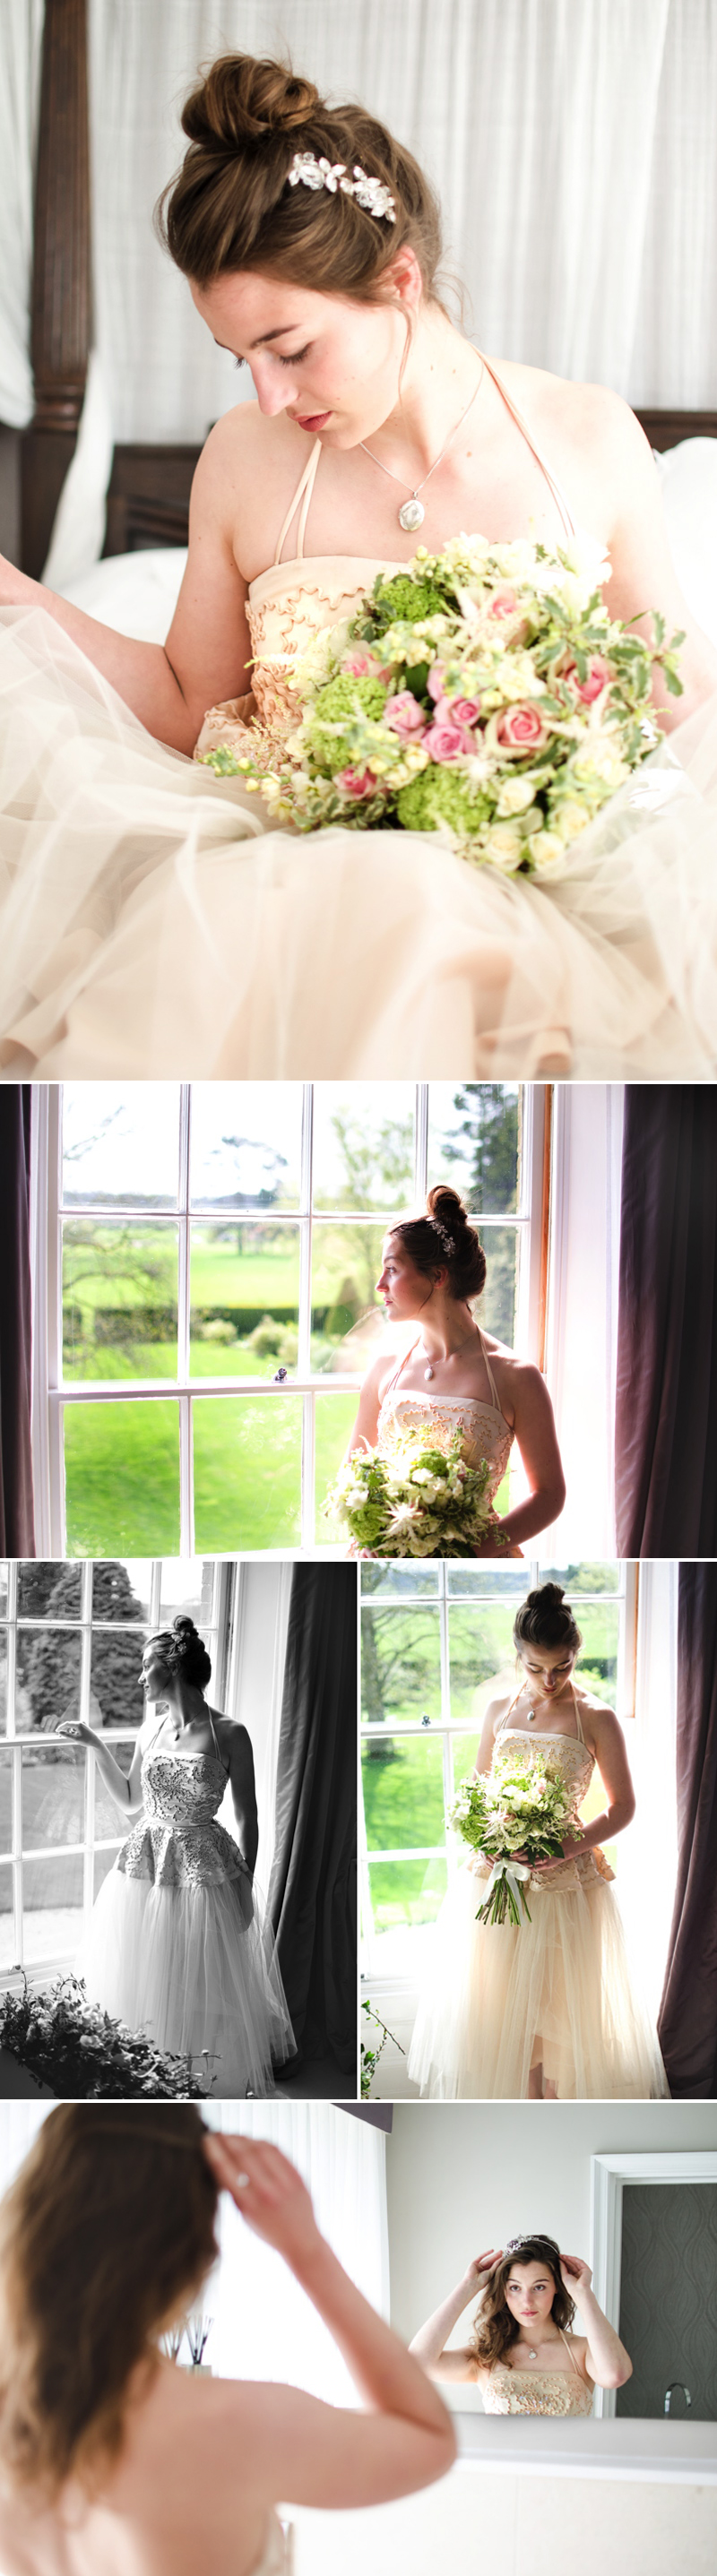 Coco Wedding Venues - Love by Coco - The Little Lending Co Boudoir Shoot at Godwick Hall - Image by LP Photography.